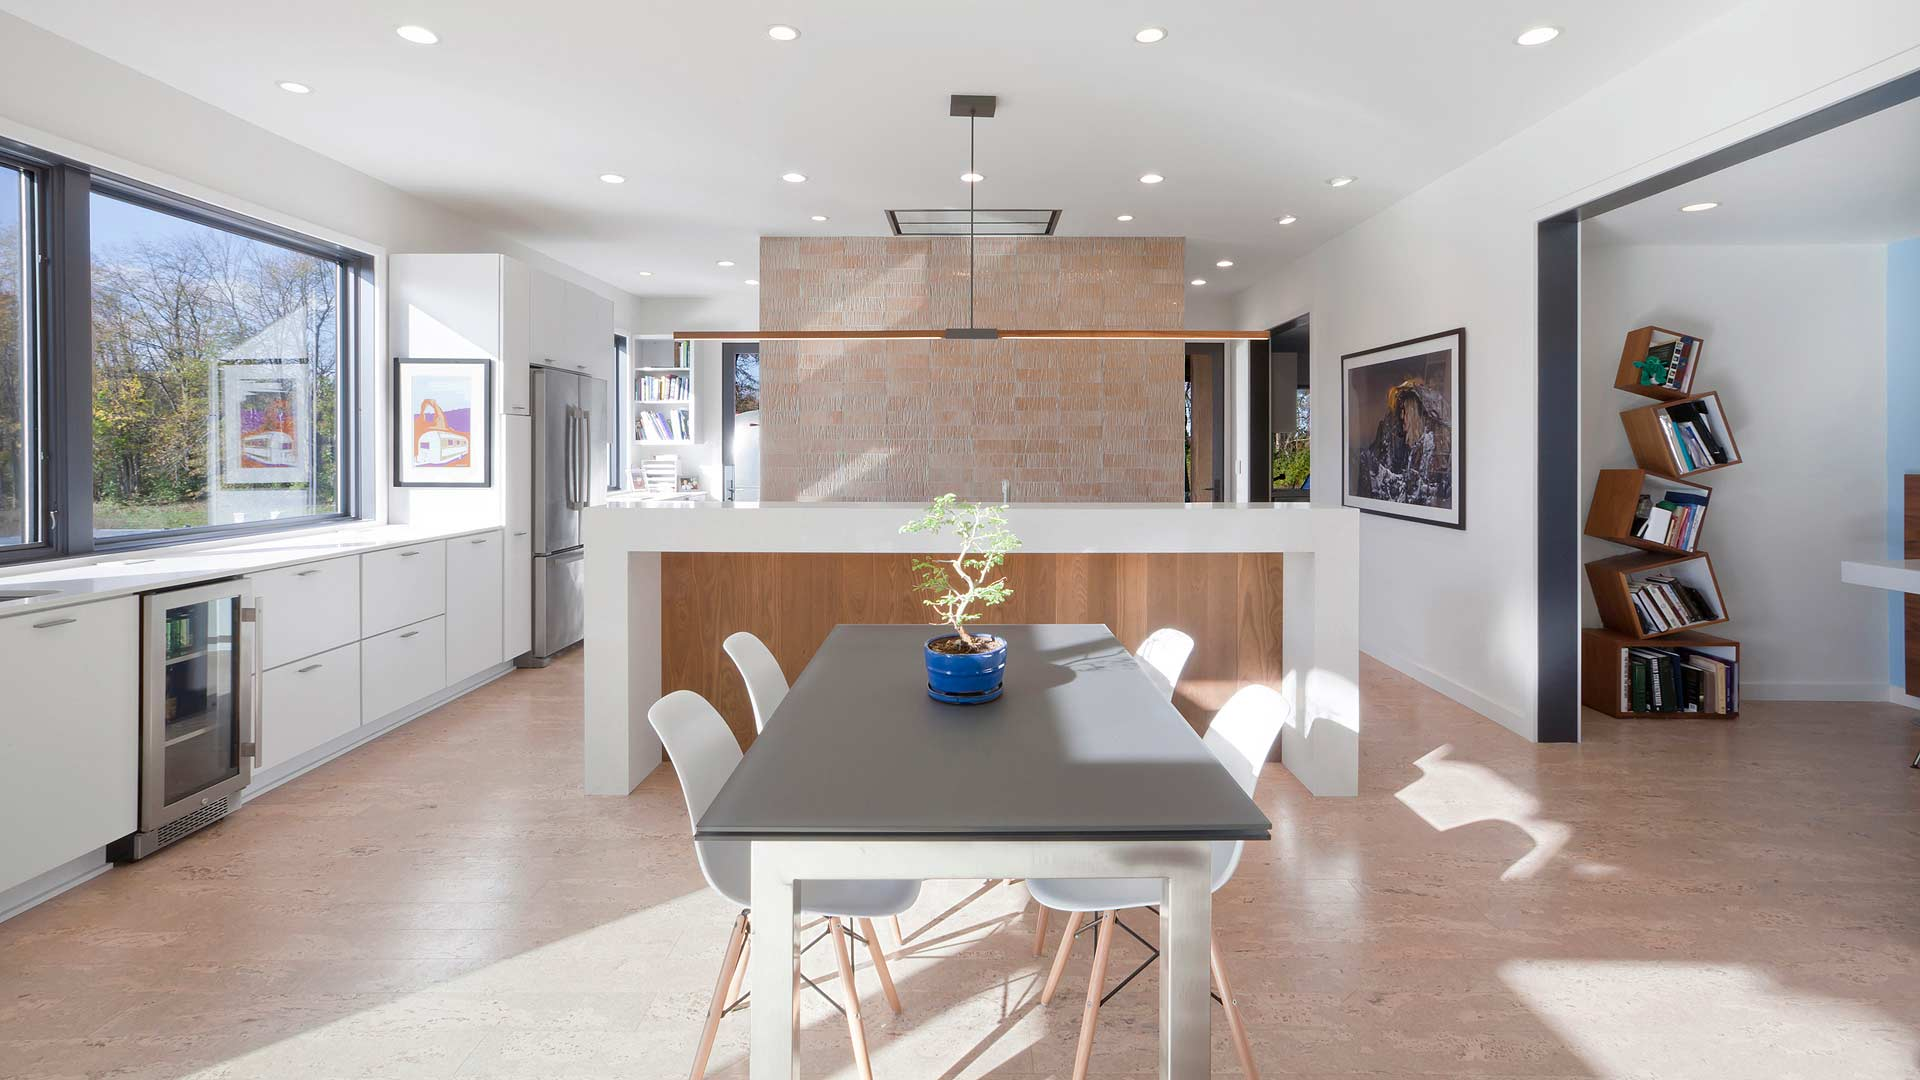 Open concept Dining and Kitchen features thermally treated wood on island, cork flooring, and expansive window views - New Modern House 1 (Copperwood) - Zionsville, IN